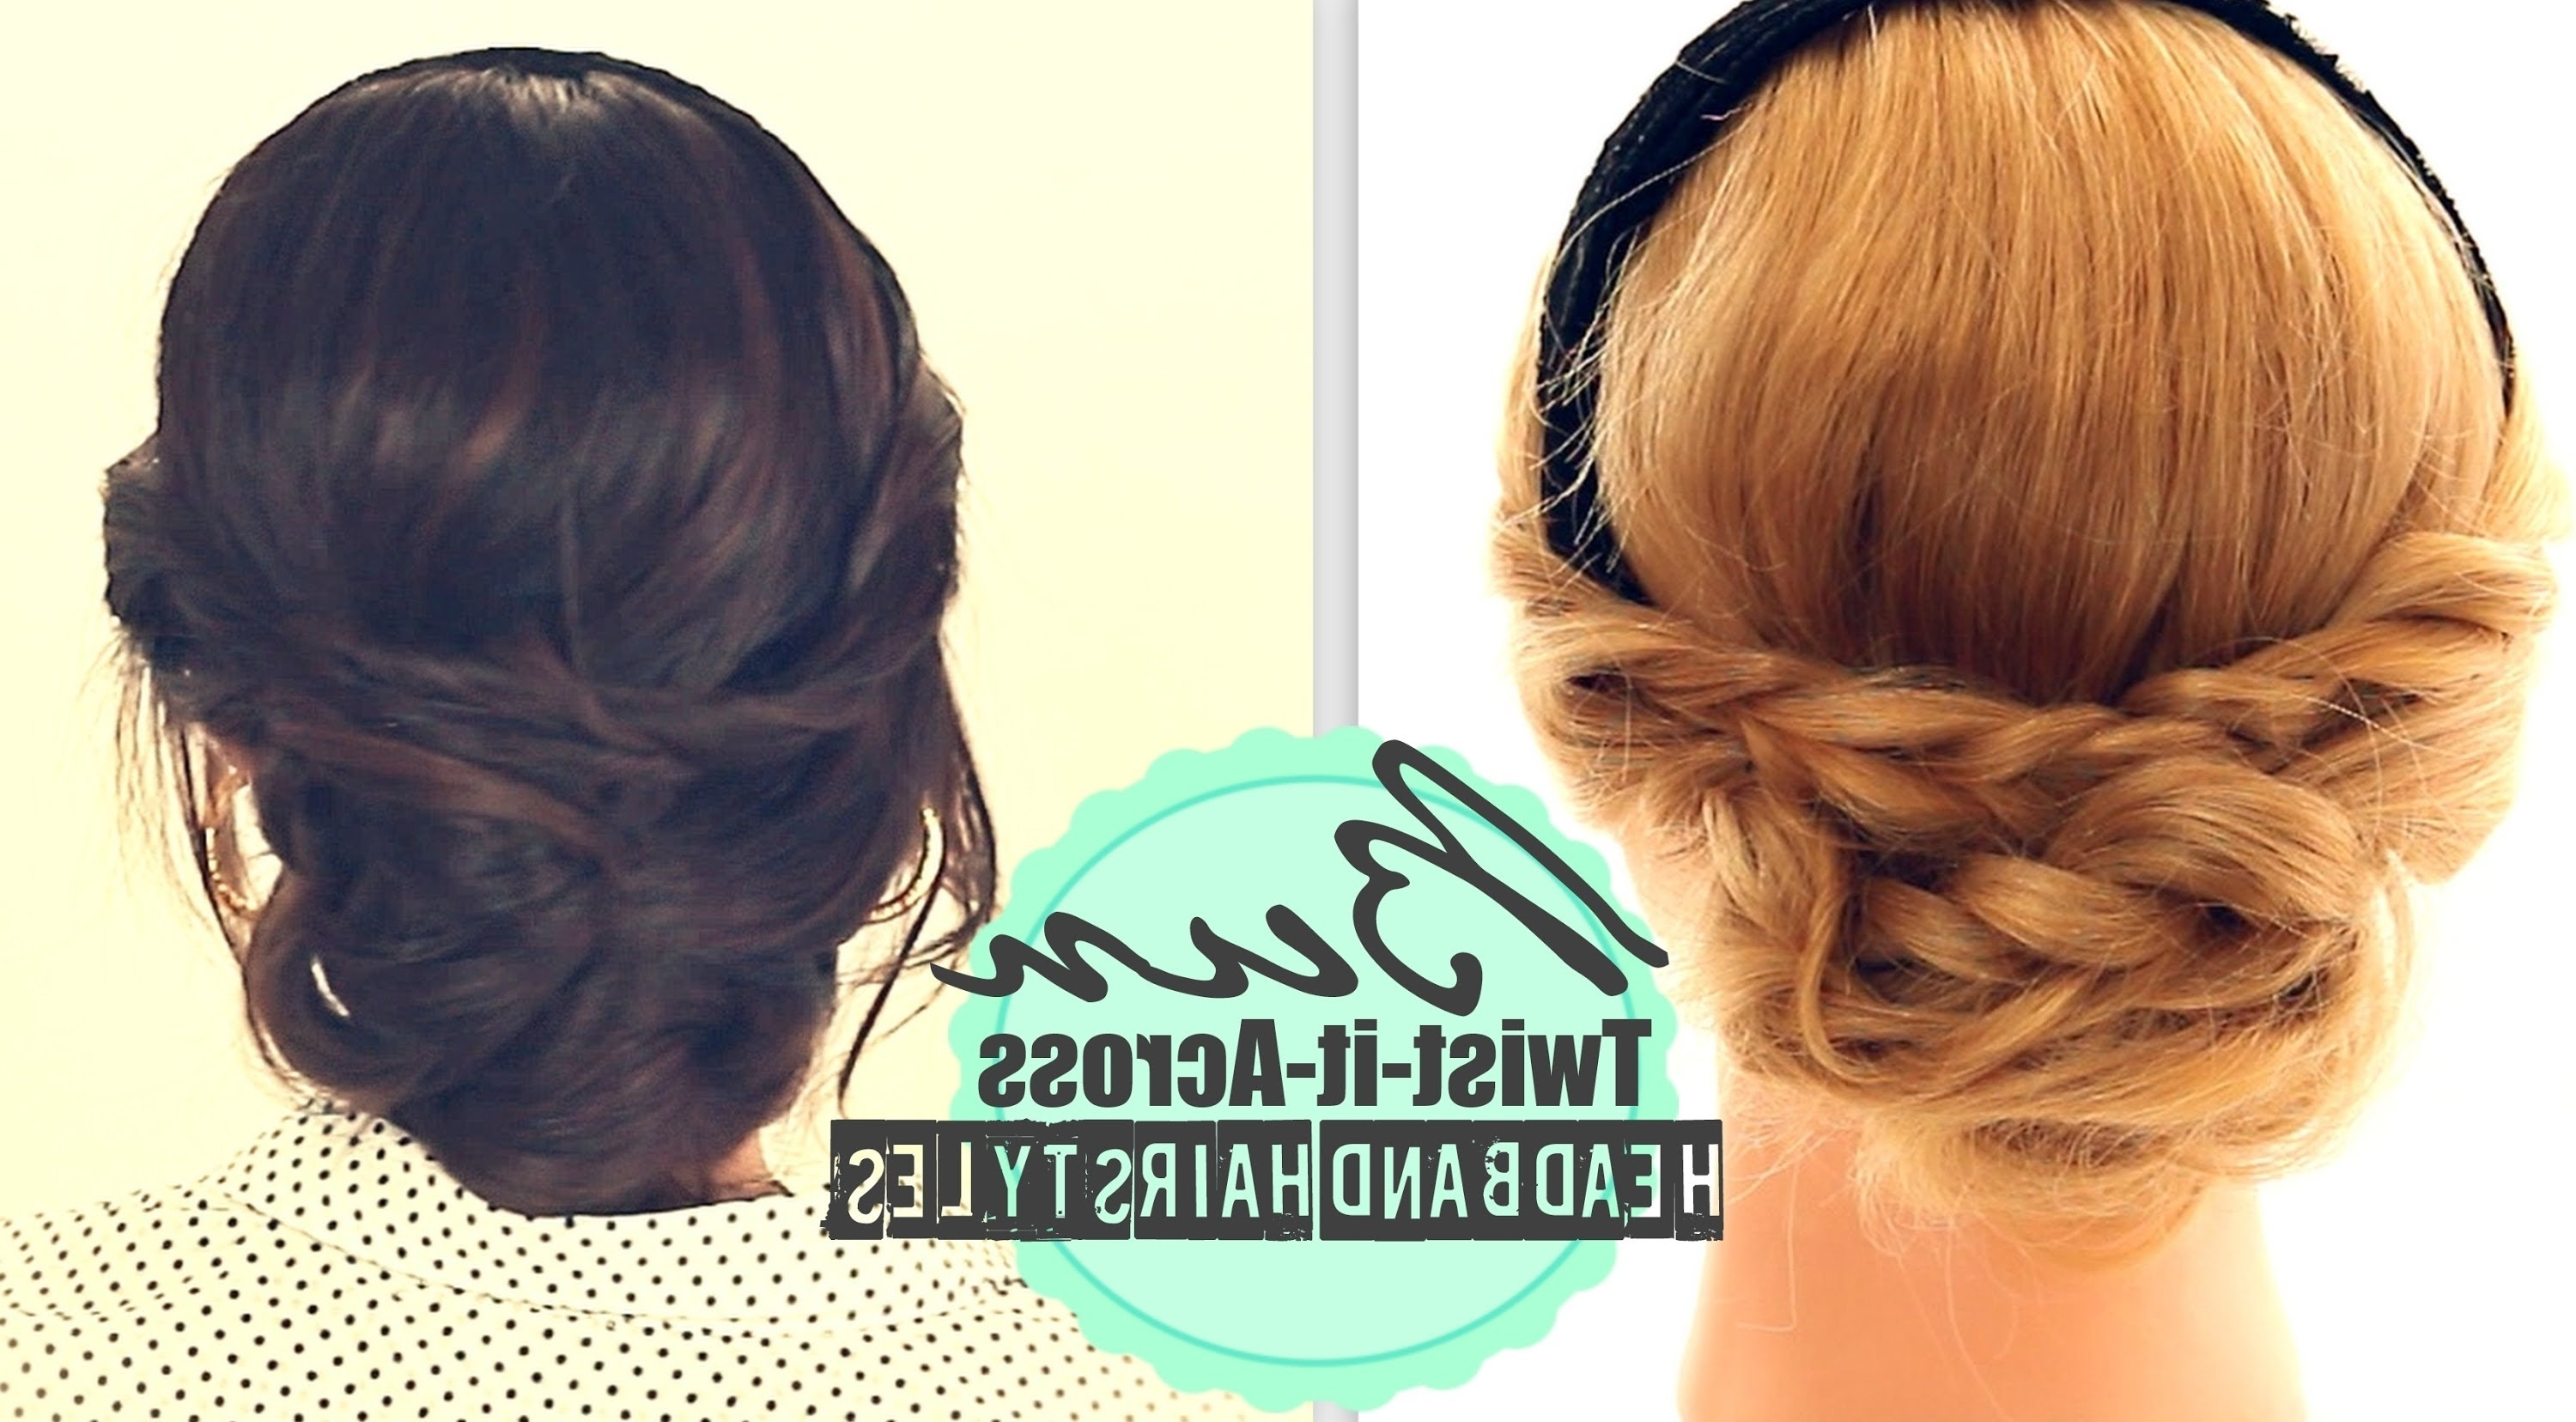 ☆ Cute Headband Hairstyles #2| Everyday Bun Twisted Updo For Medium In Twisted Bun Updo Hairstyles (View 1 of 15)